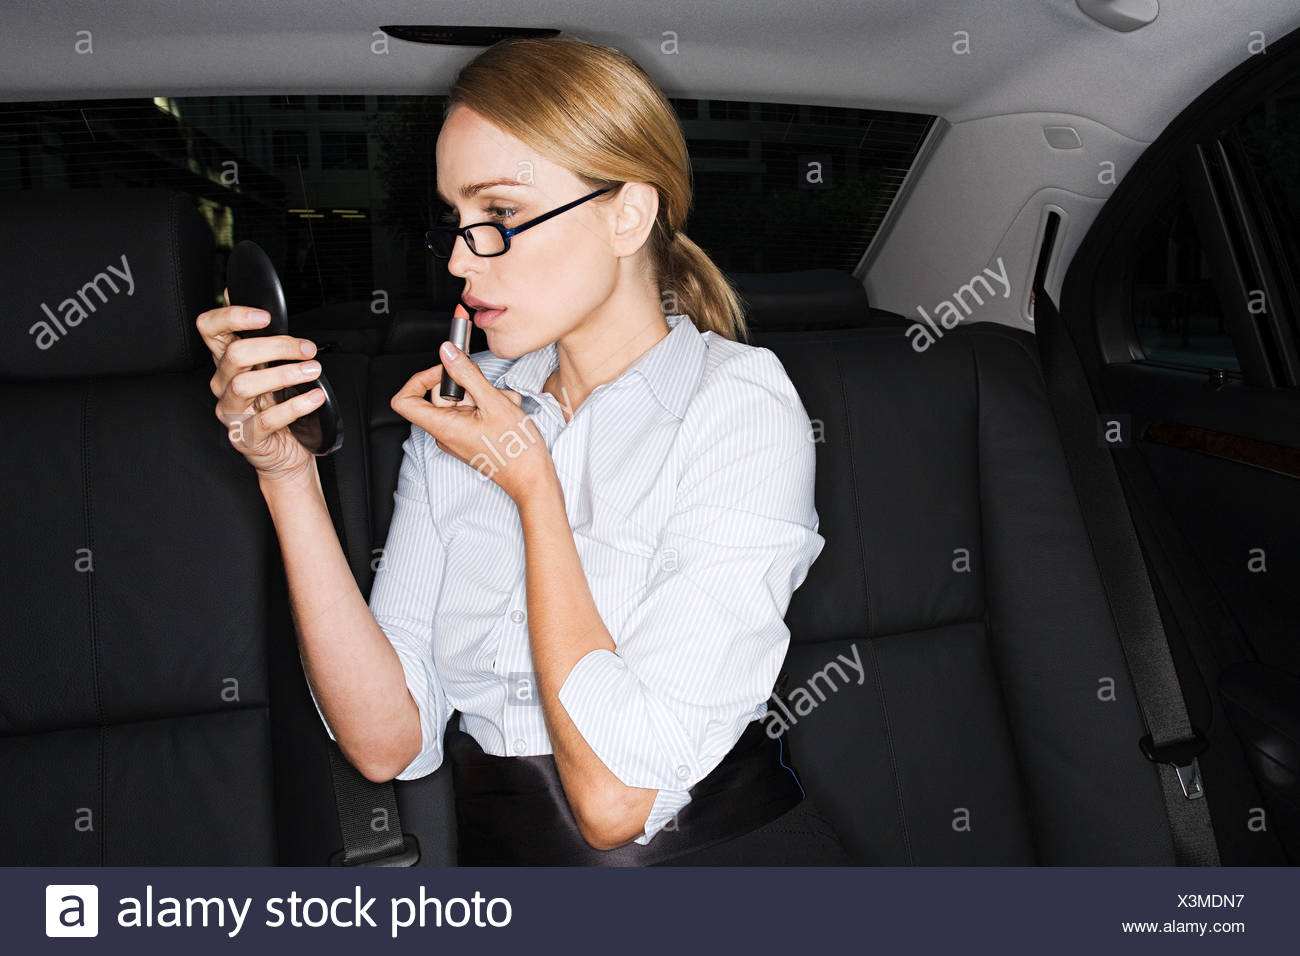 Businesswoman applying lipstick - Stock Image